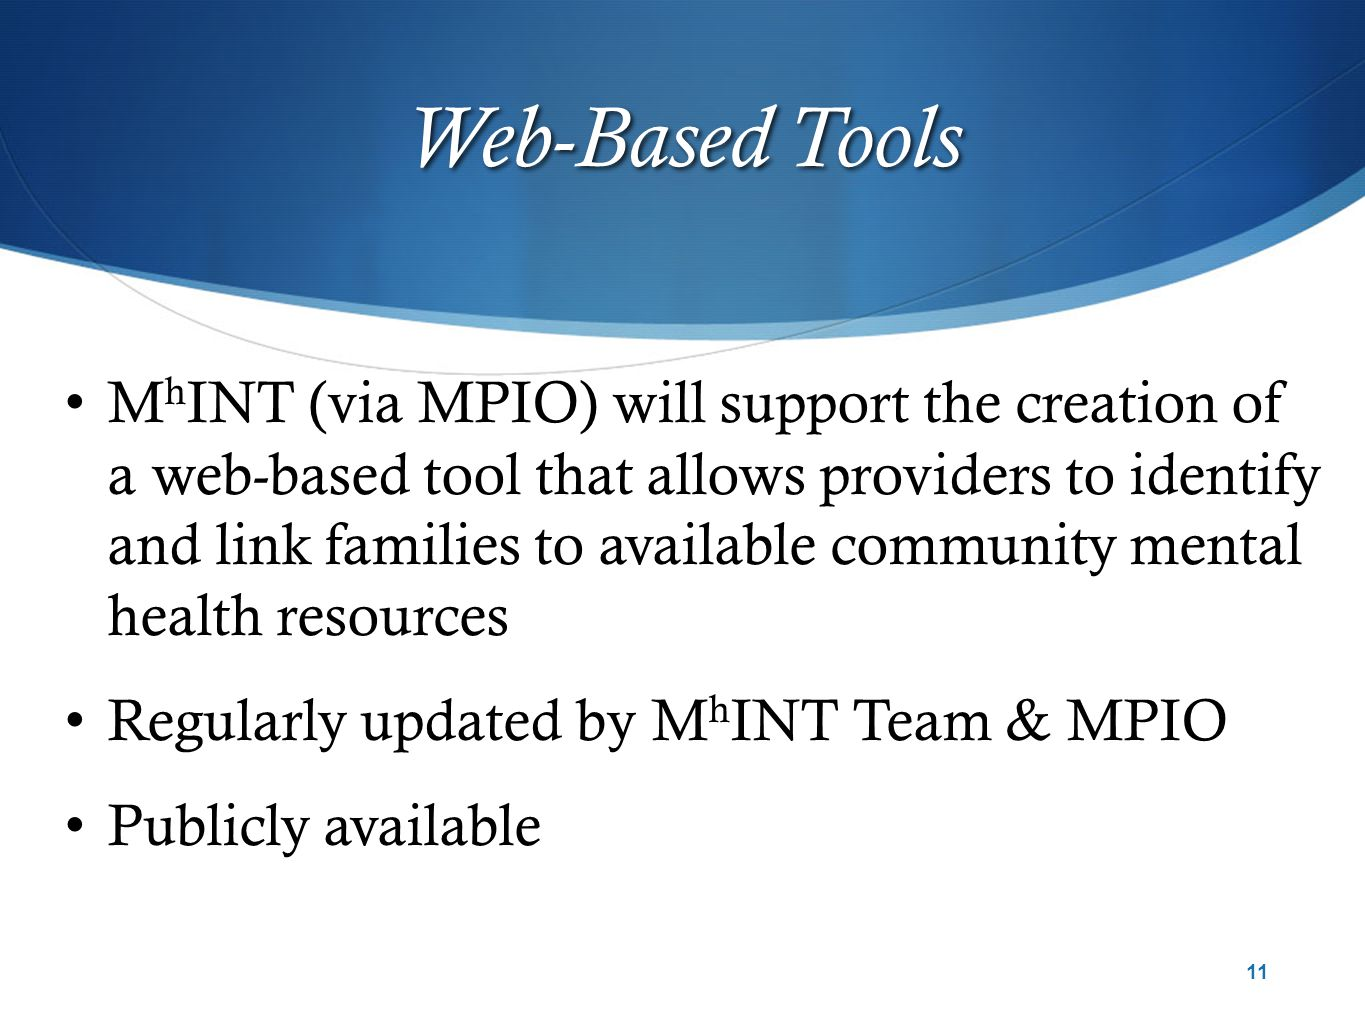 Web-Based Tools M h INT (via MPIO) will support the creation of a web-based tool that allows providers to identify and link families to available community mental health resources Regularly updated by M h INT Team & MPIO Publicly available 11